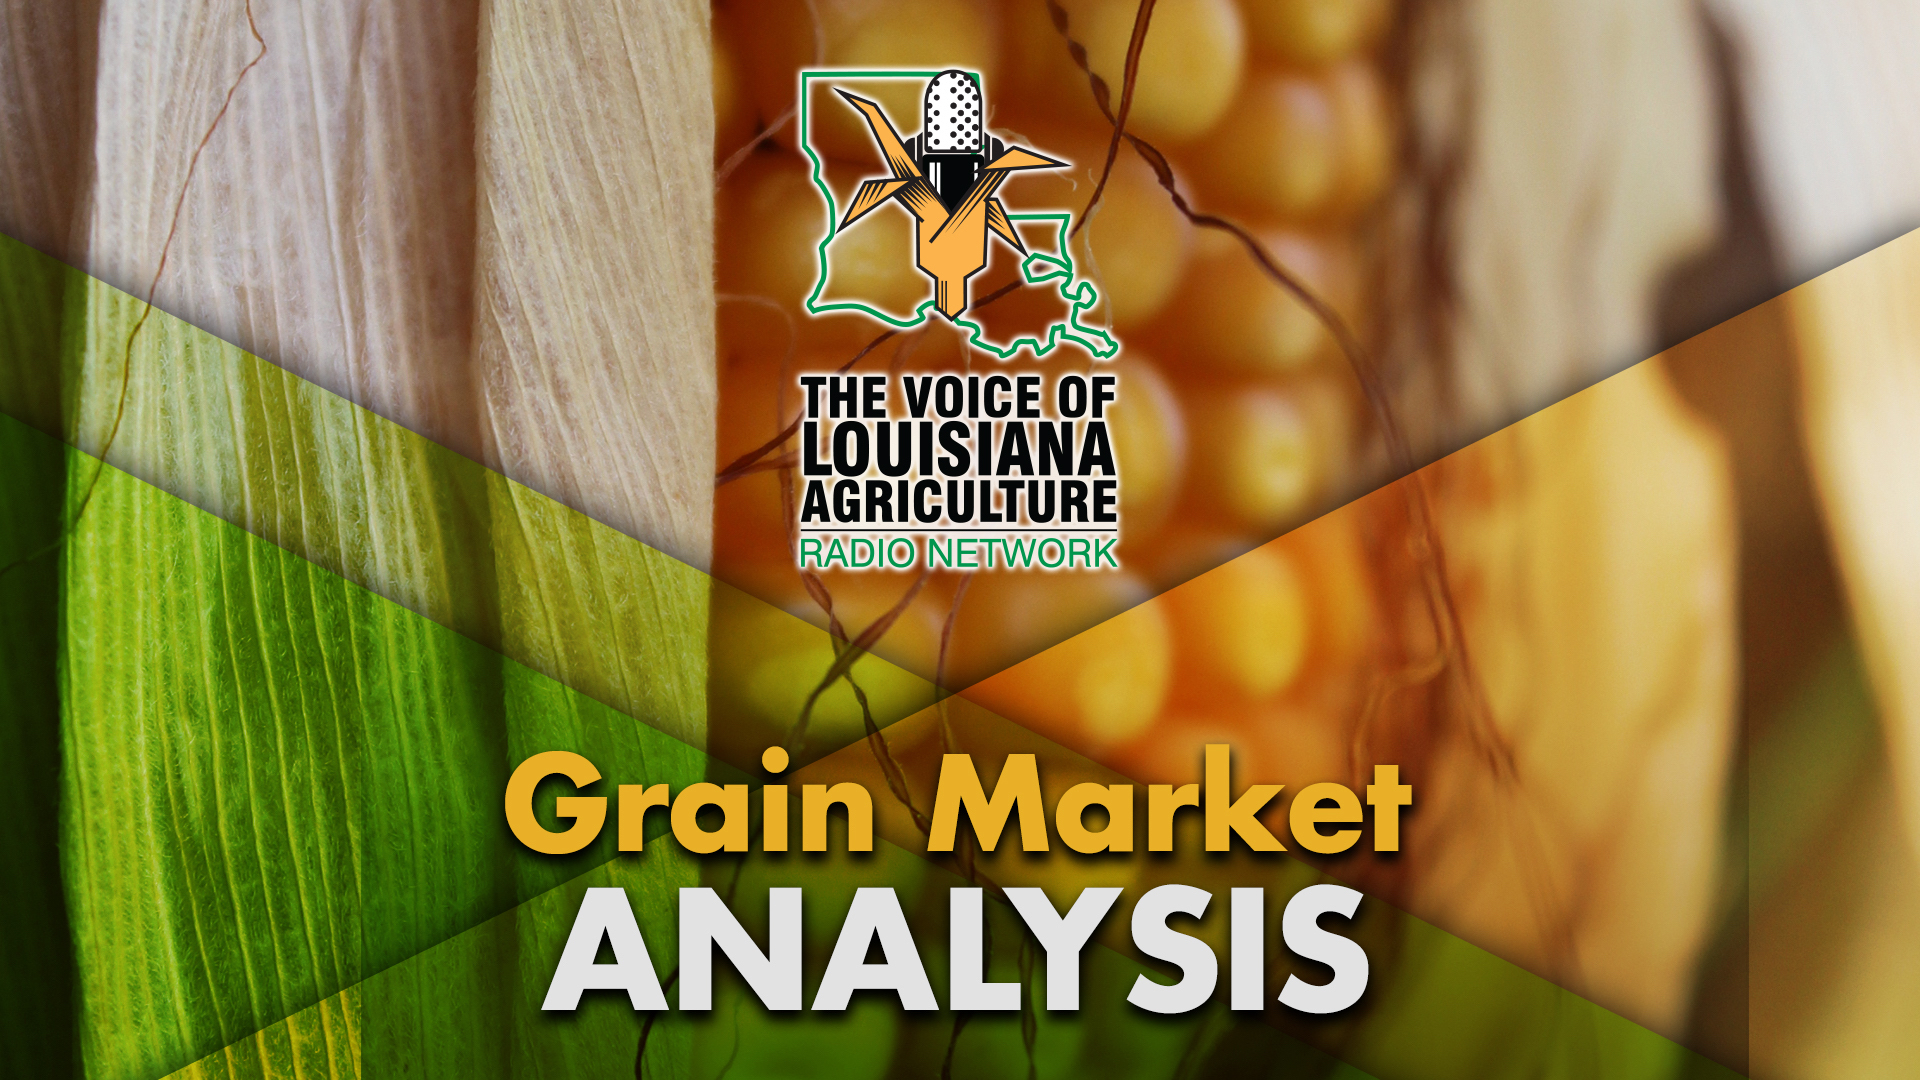 The Closing Market Report on the Voice of Louisiana Agriculture Radio Network, featuring grain market commentary from Greg Fox, grain marketing specialist with the Louisiana Farm Bureau Marketing Association.